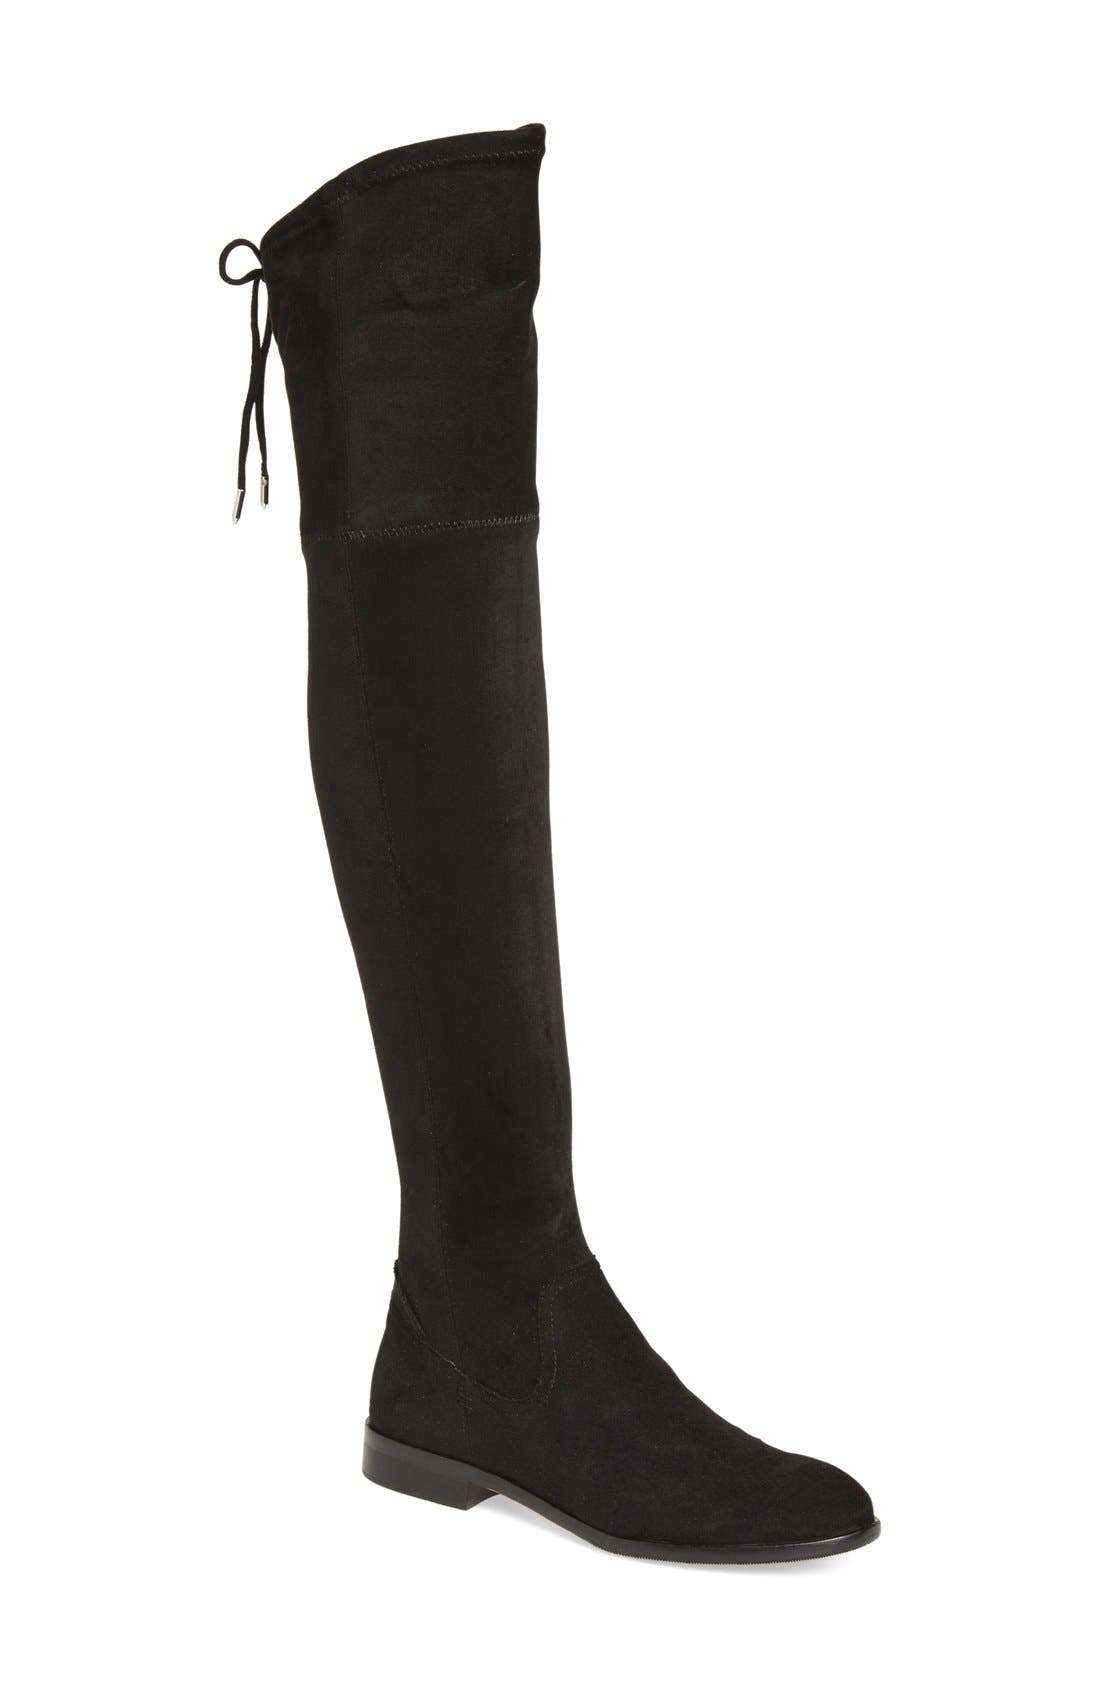 Alternate Image 1 Selected - Dolce Vita 'Neely' Over the Knee Boot (Women)